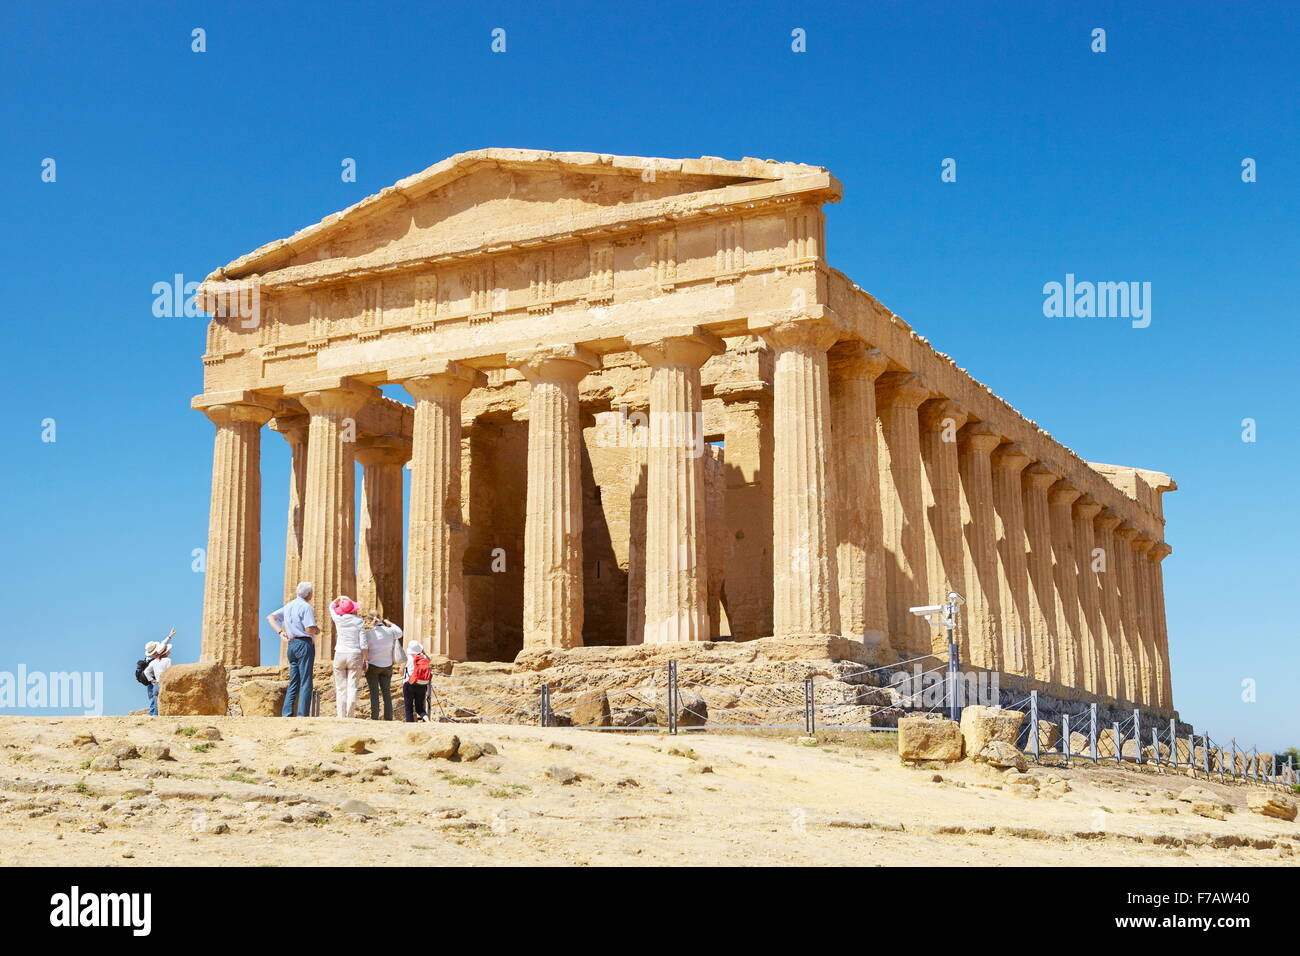 Agrigento - Temple of Concordia, Valley of Temples (Valle dei Templi), Agrigento, Sicily, Italy UNESCO - Stock Image